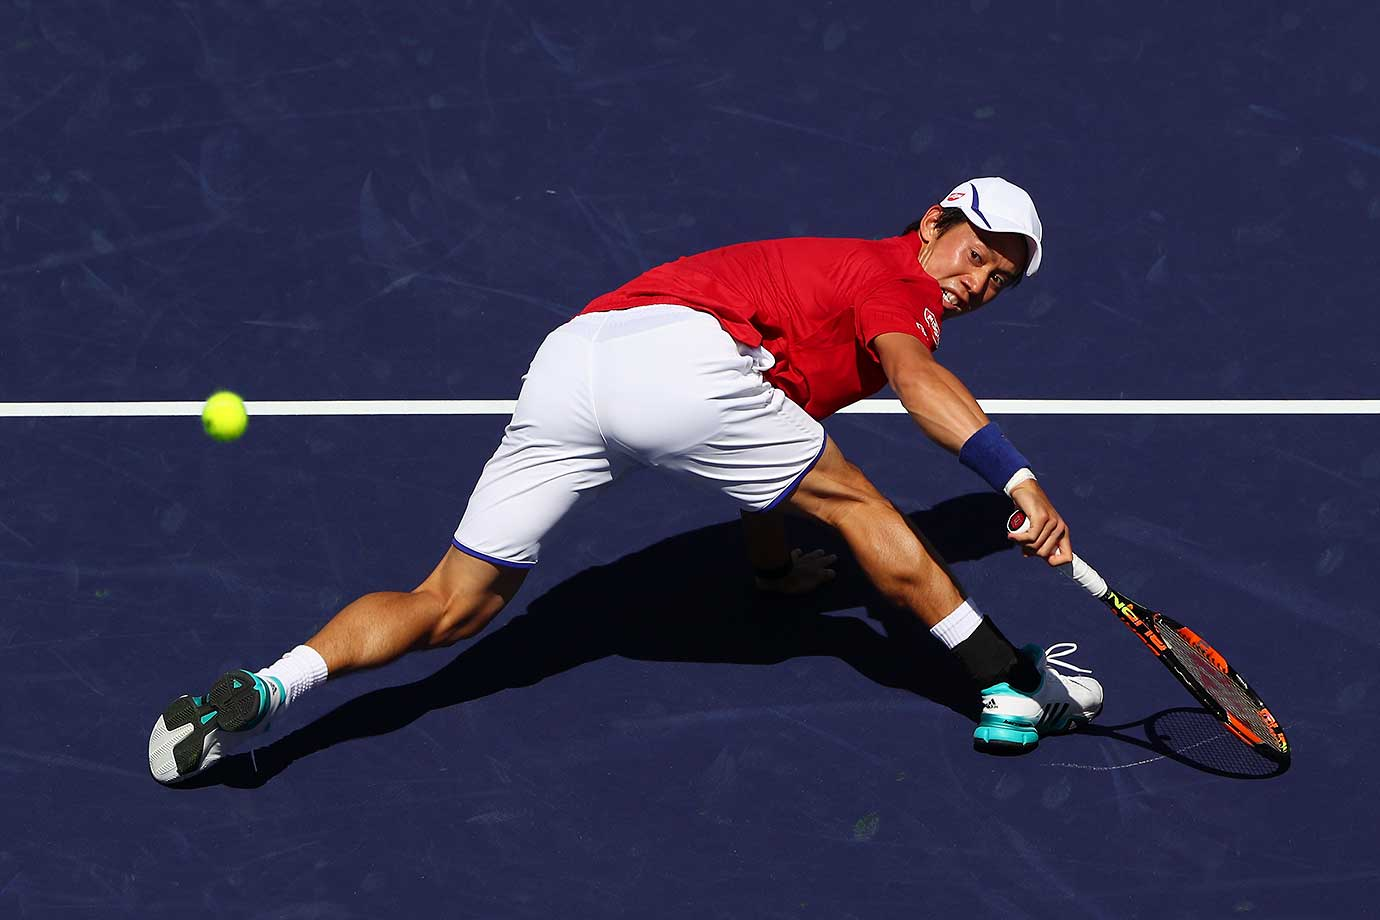 Kei Nishikori of Japan in action in his match against Rafael Nadal of Spain.